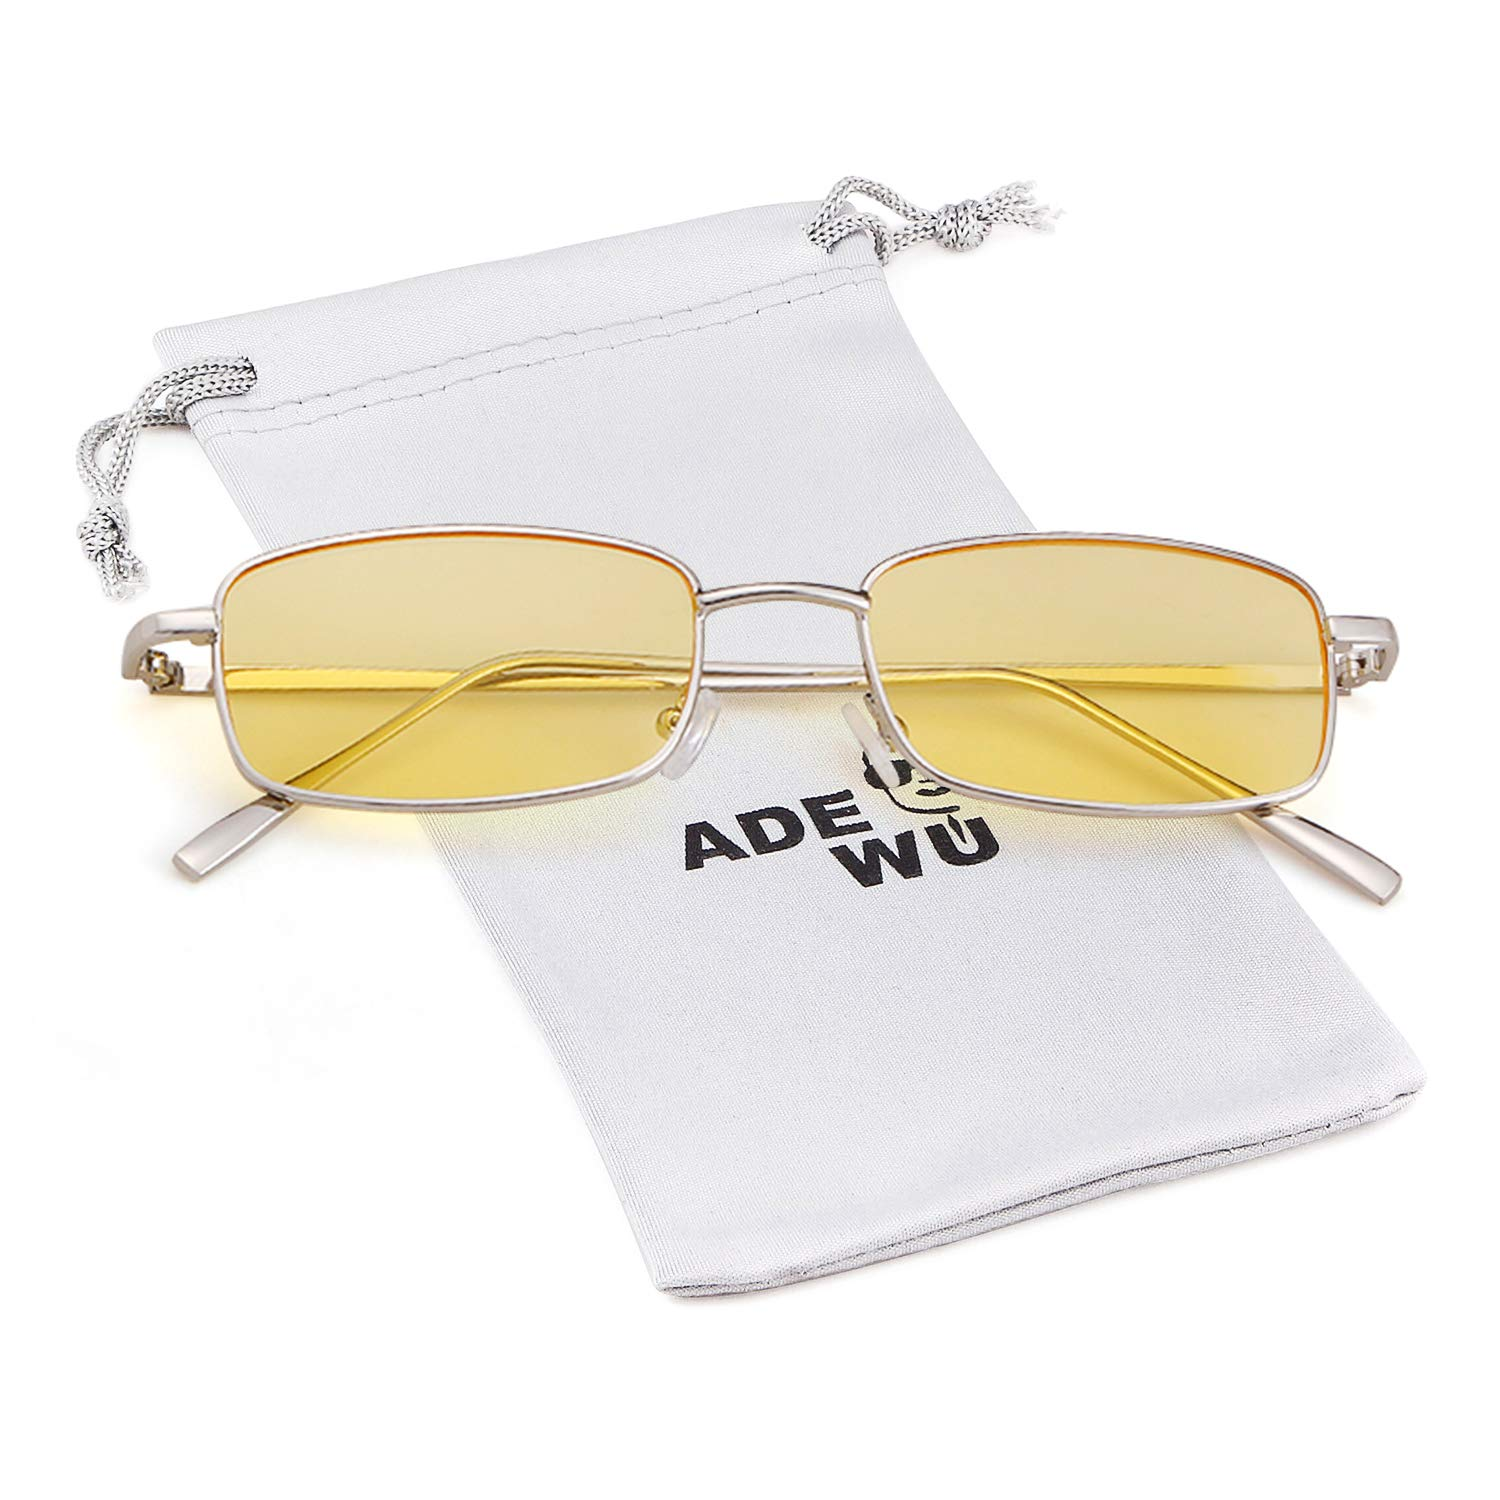 Vintage Steampunk Sunglasses Fashion Metal Frame Clear Lens Shades for Women by ADEWU (Image #1)